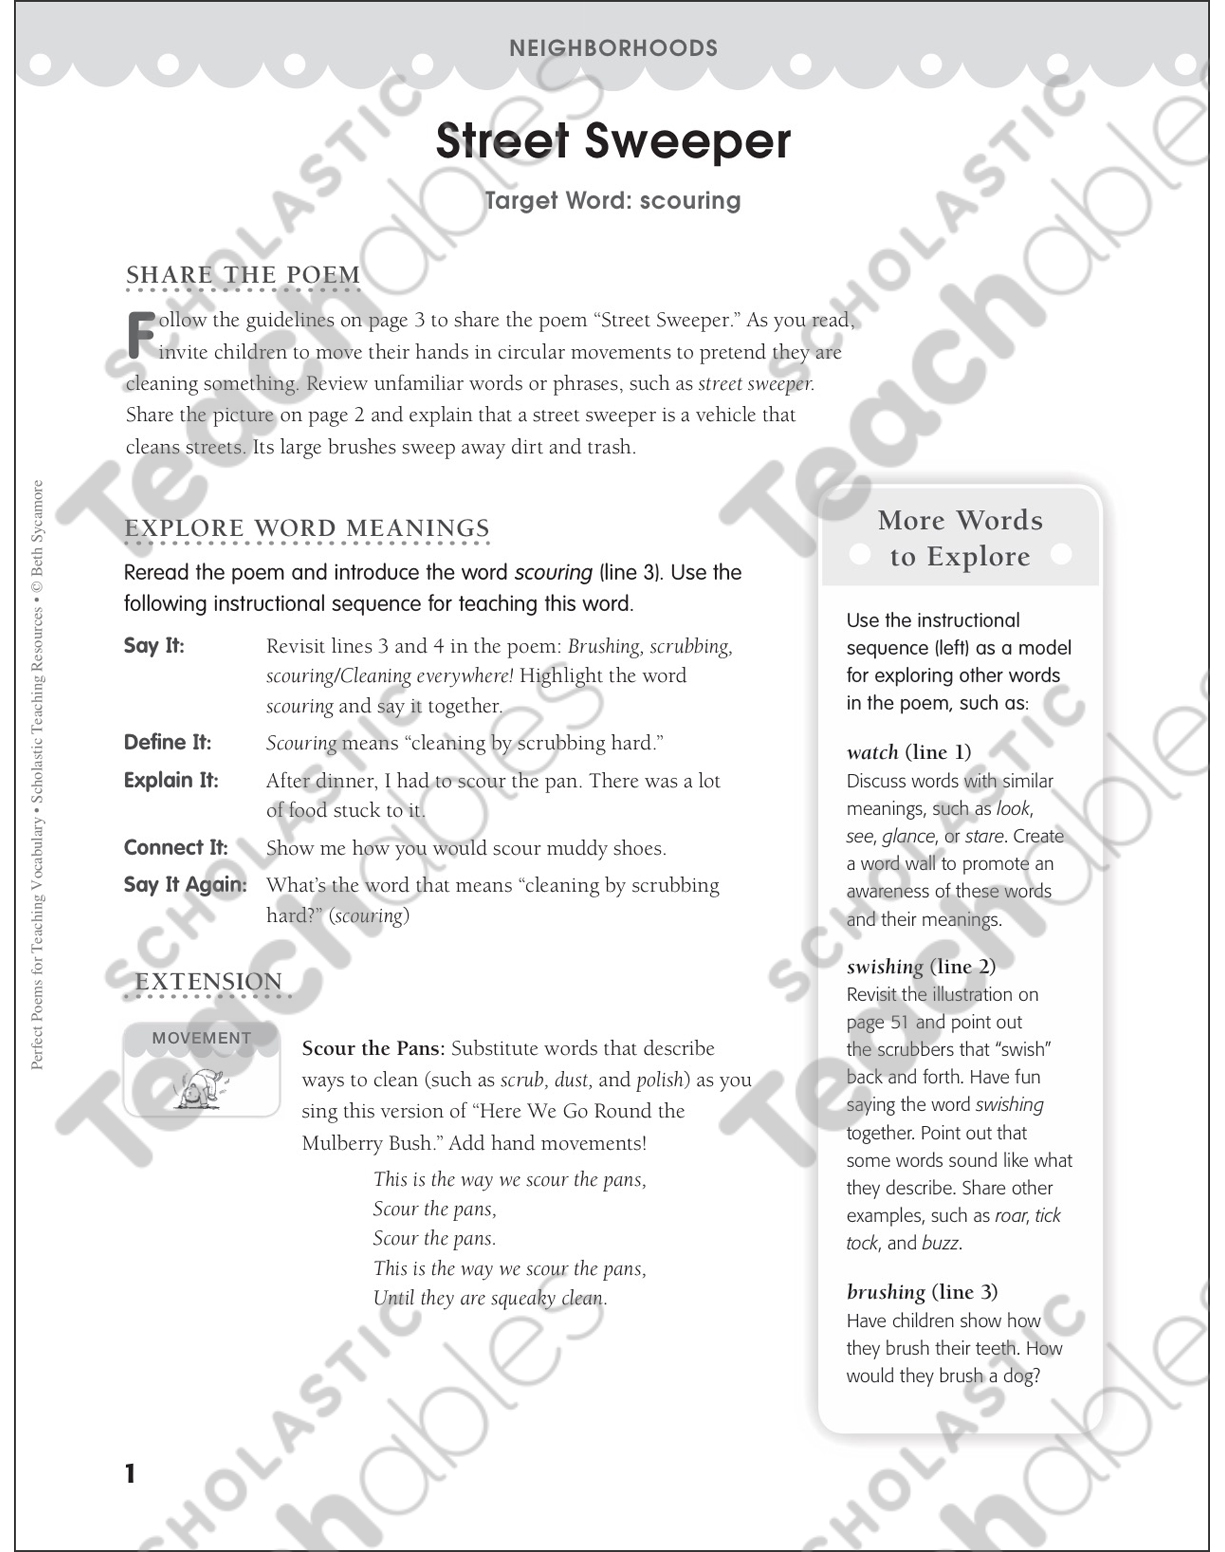 Street Sweeper (Target Word - Scouring) | Printable Lesson Plans